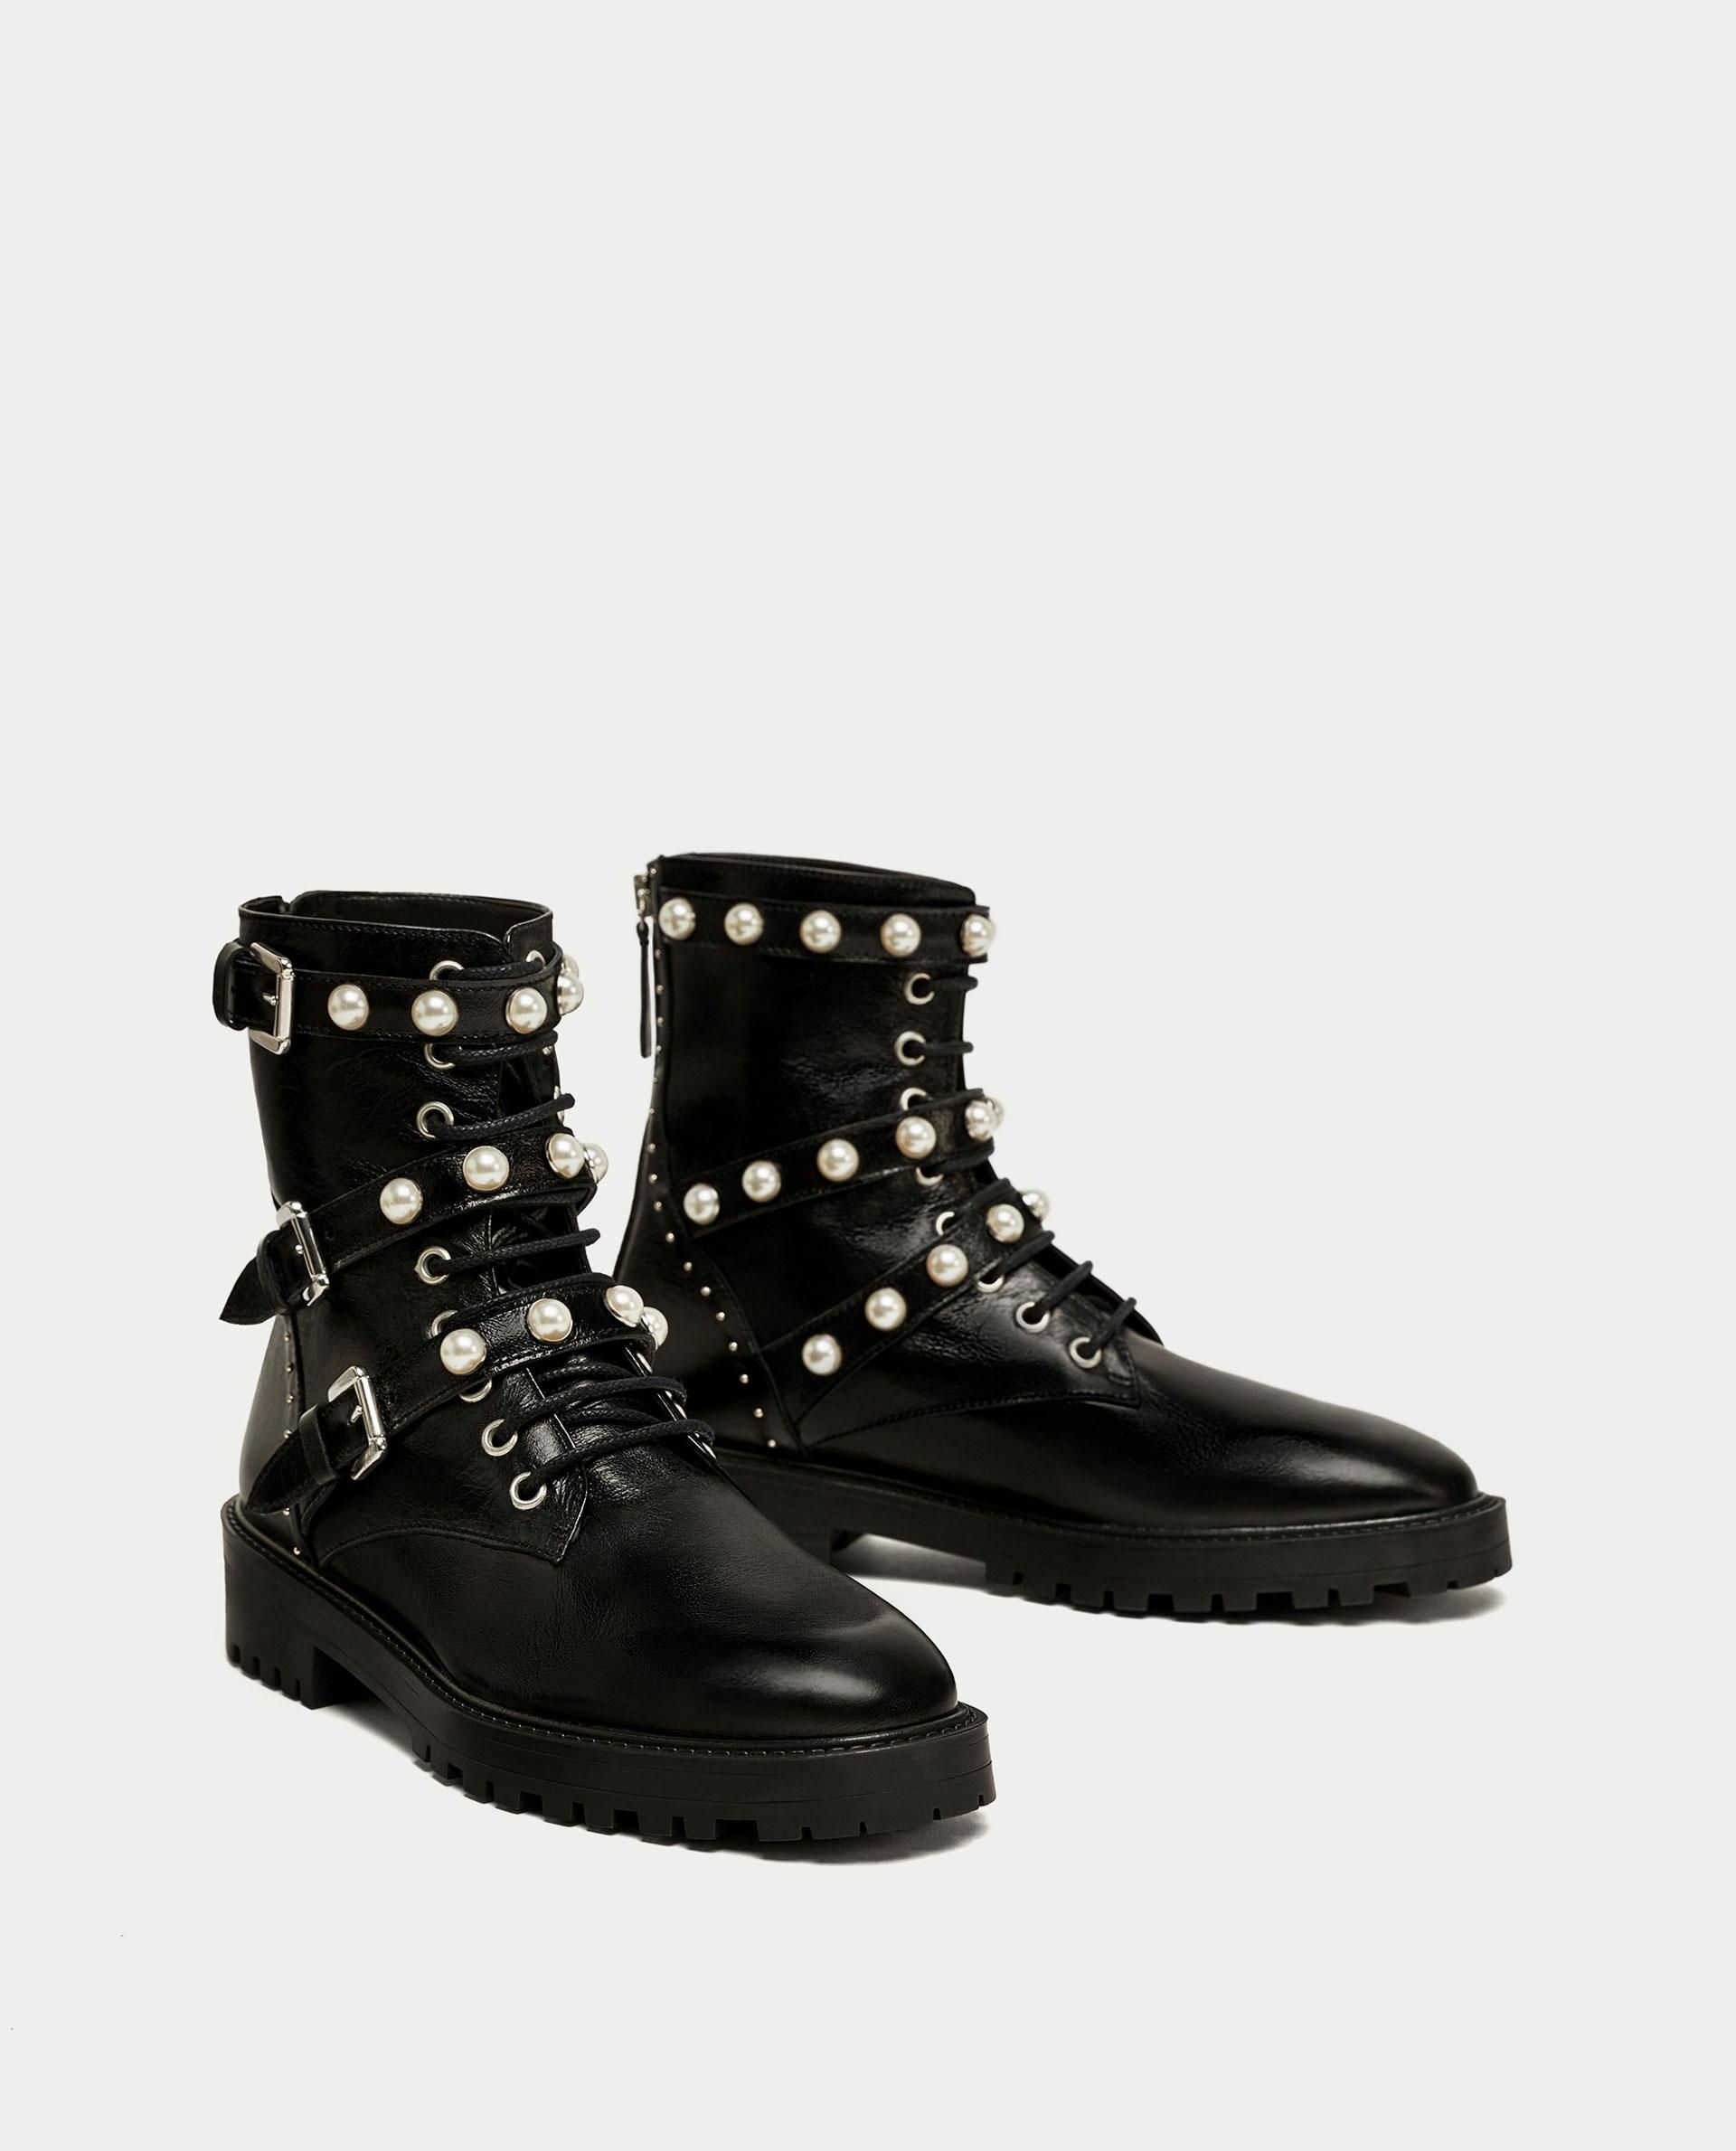 5c6737216 Leather Ankle Boots With Faux Pearls    119.00 USD    Zara    Black flat  leather ankle boots. Studs detail on the heel. Laces and straps with pearly  detail ...